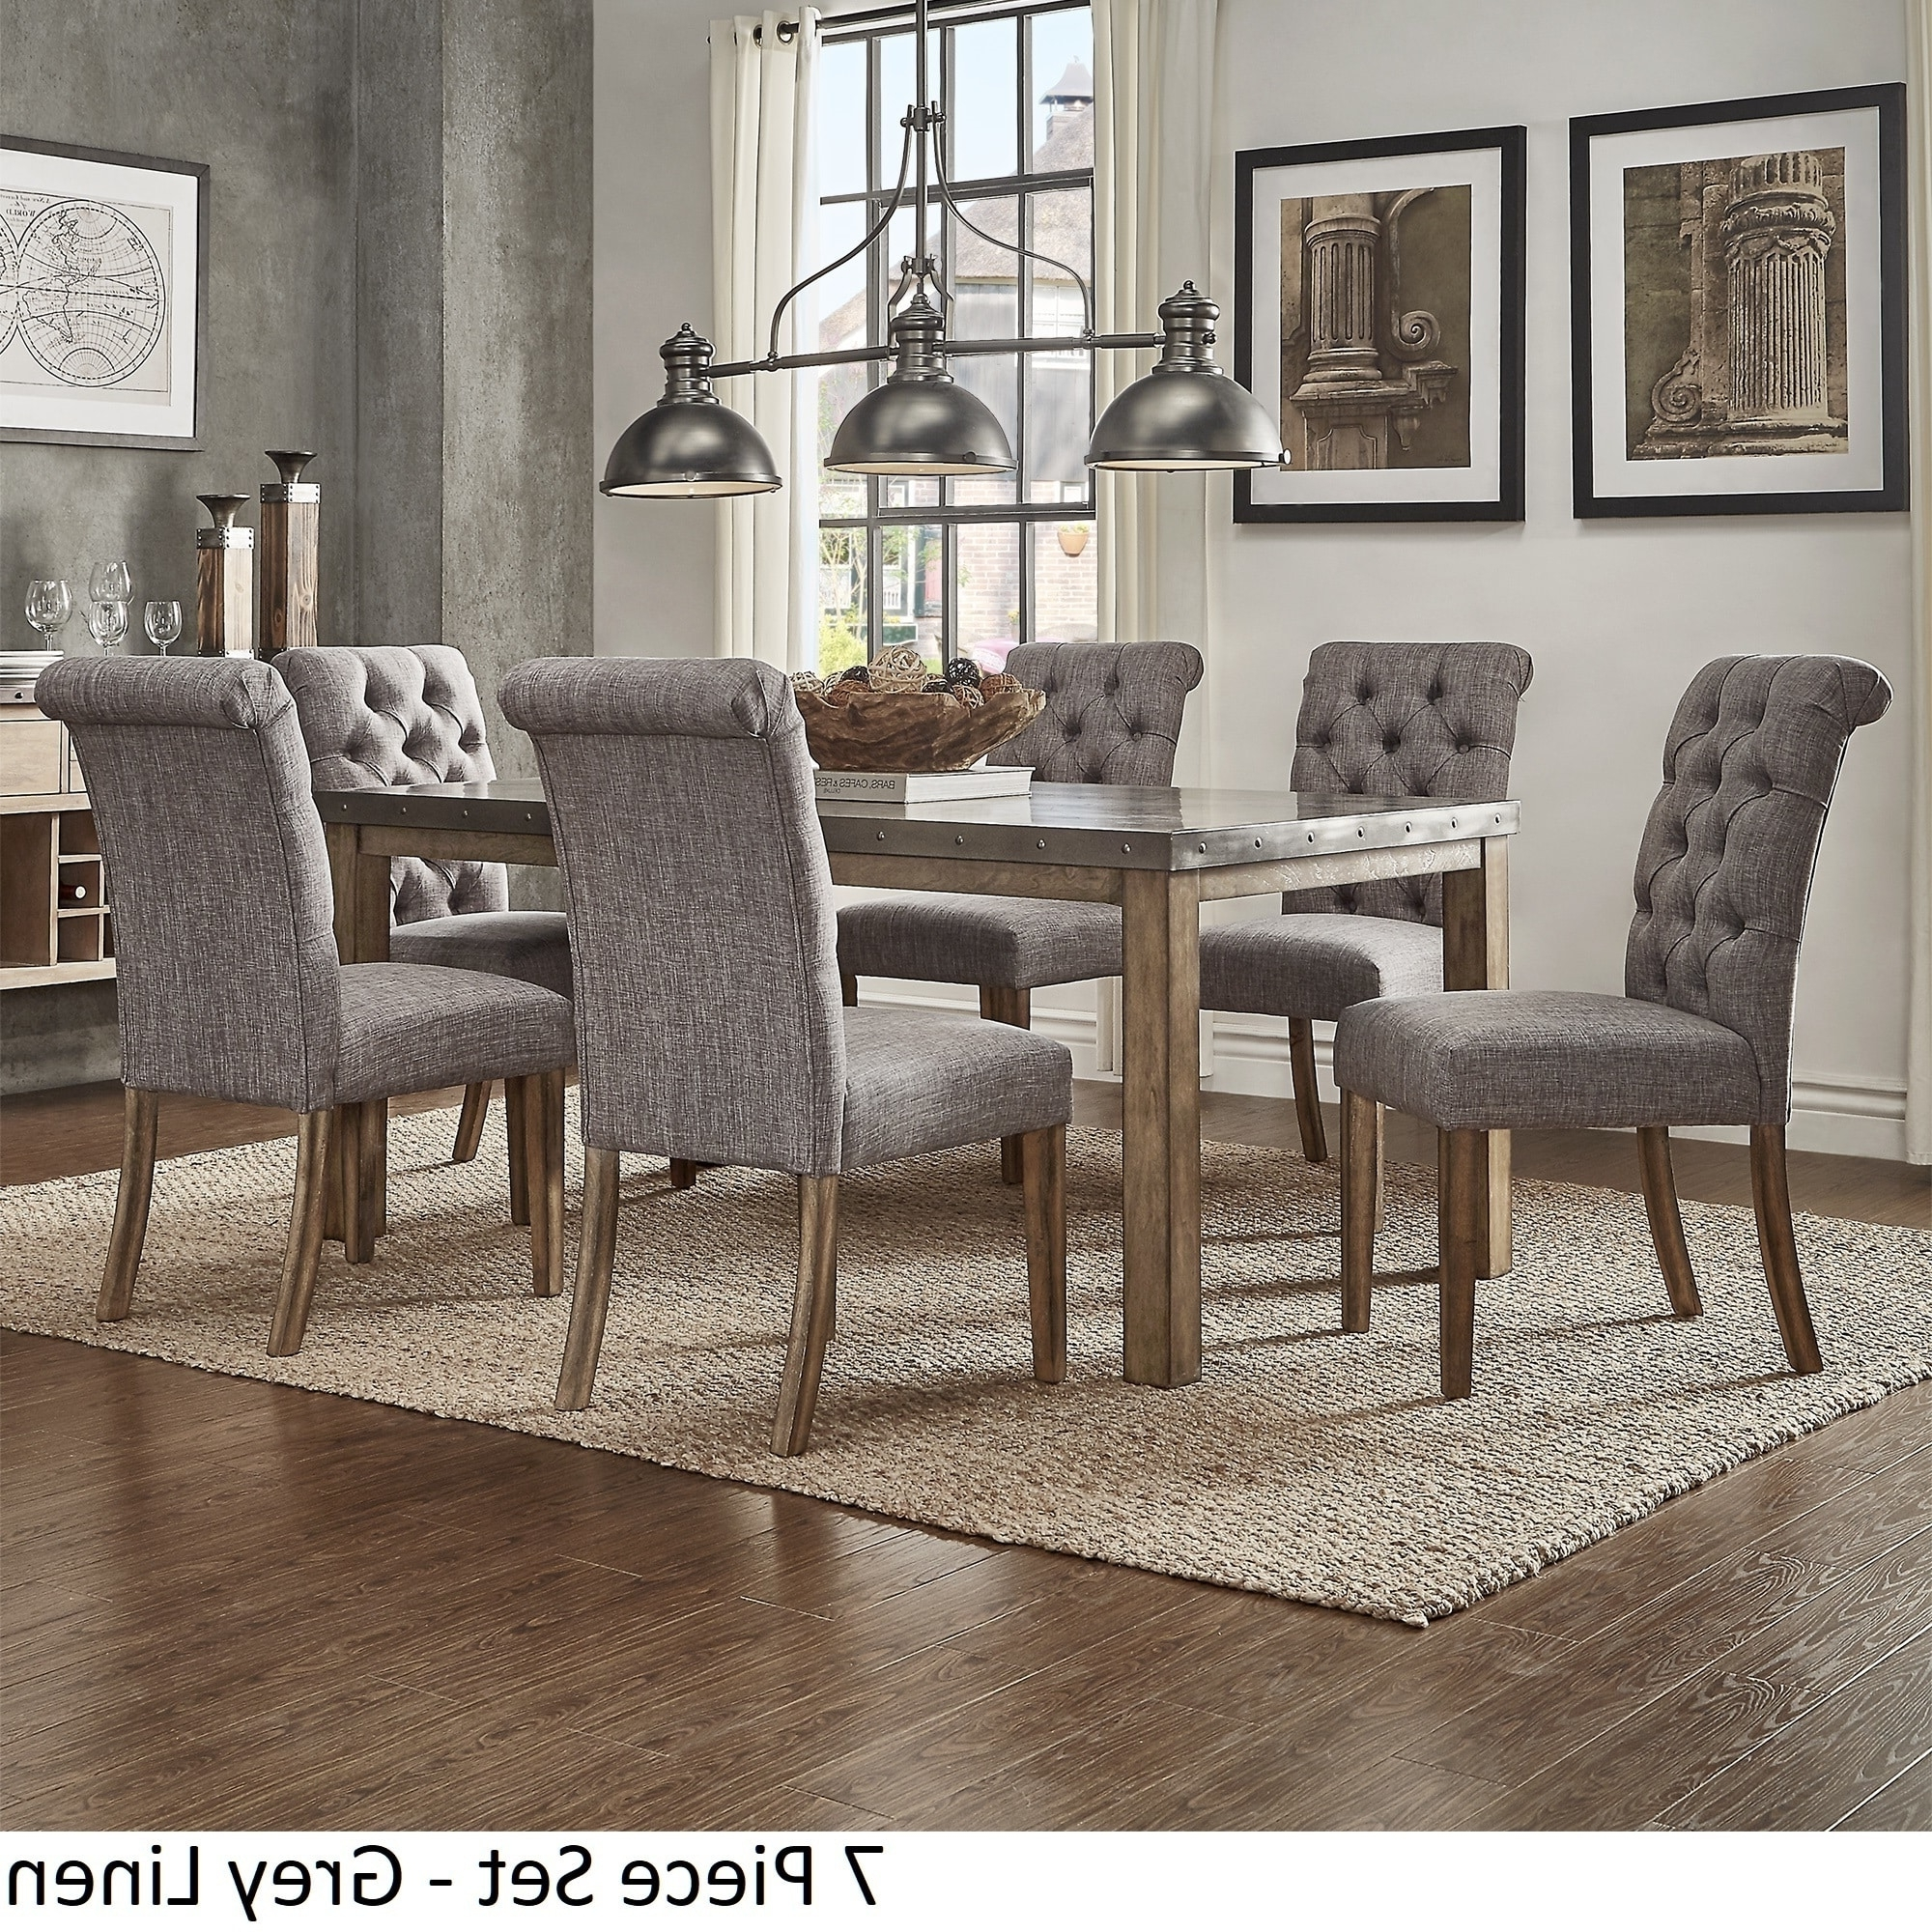 Most Recently Released Cassidy Stainless Steel Top Rectangle Dining Table Setinspire Q For Laurent 7 Piece Rectangle Dining Sets With Wood Chairs (View 11 of 25)